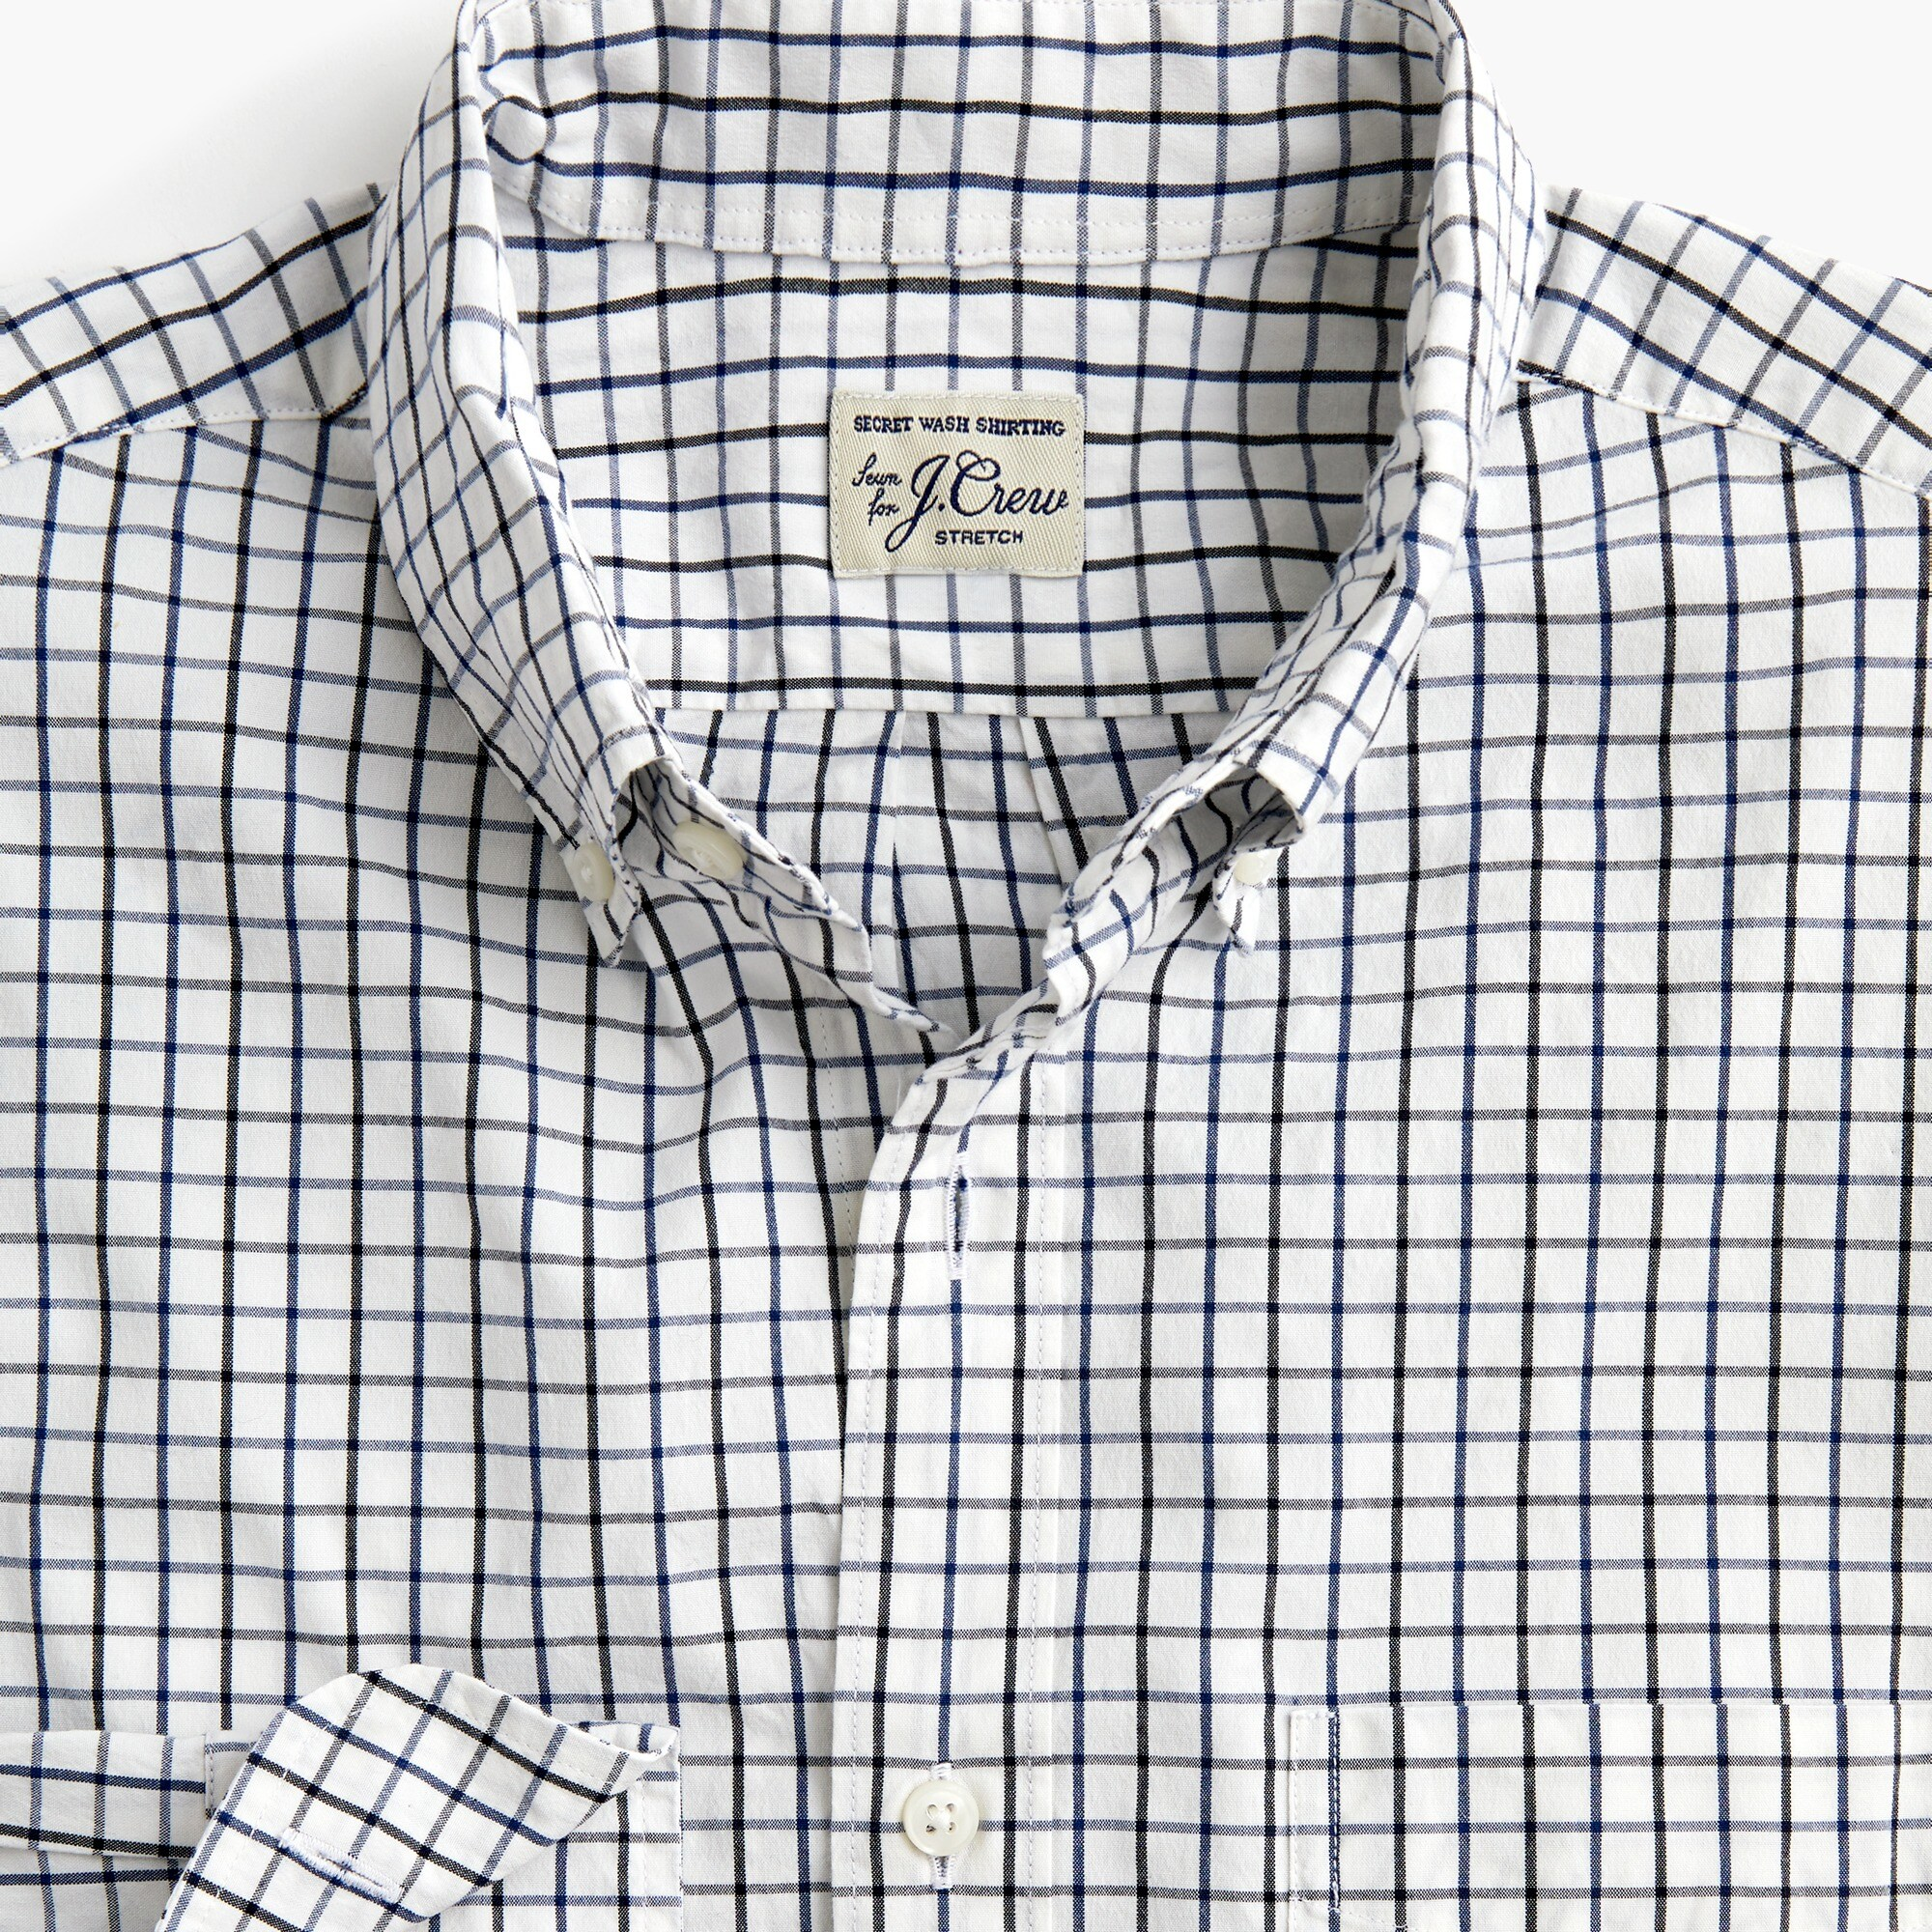 Image 1 for Slim stretch Secret Wash shirt in tattersall